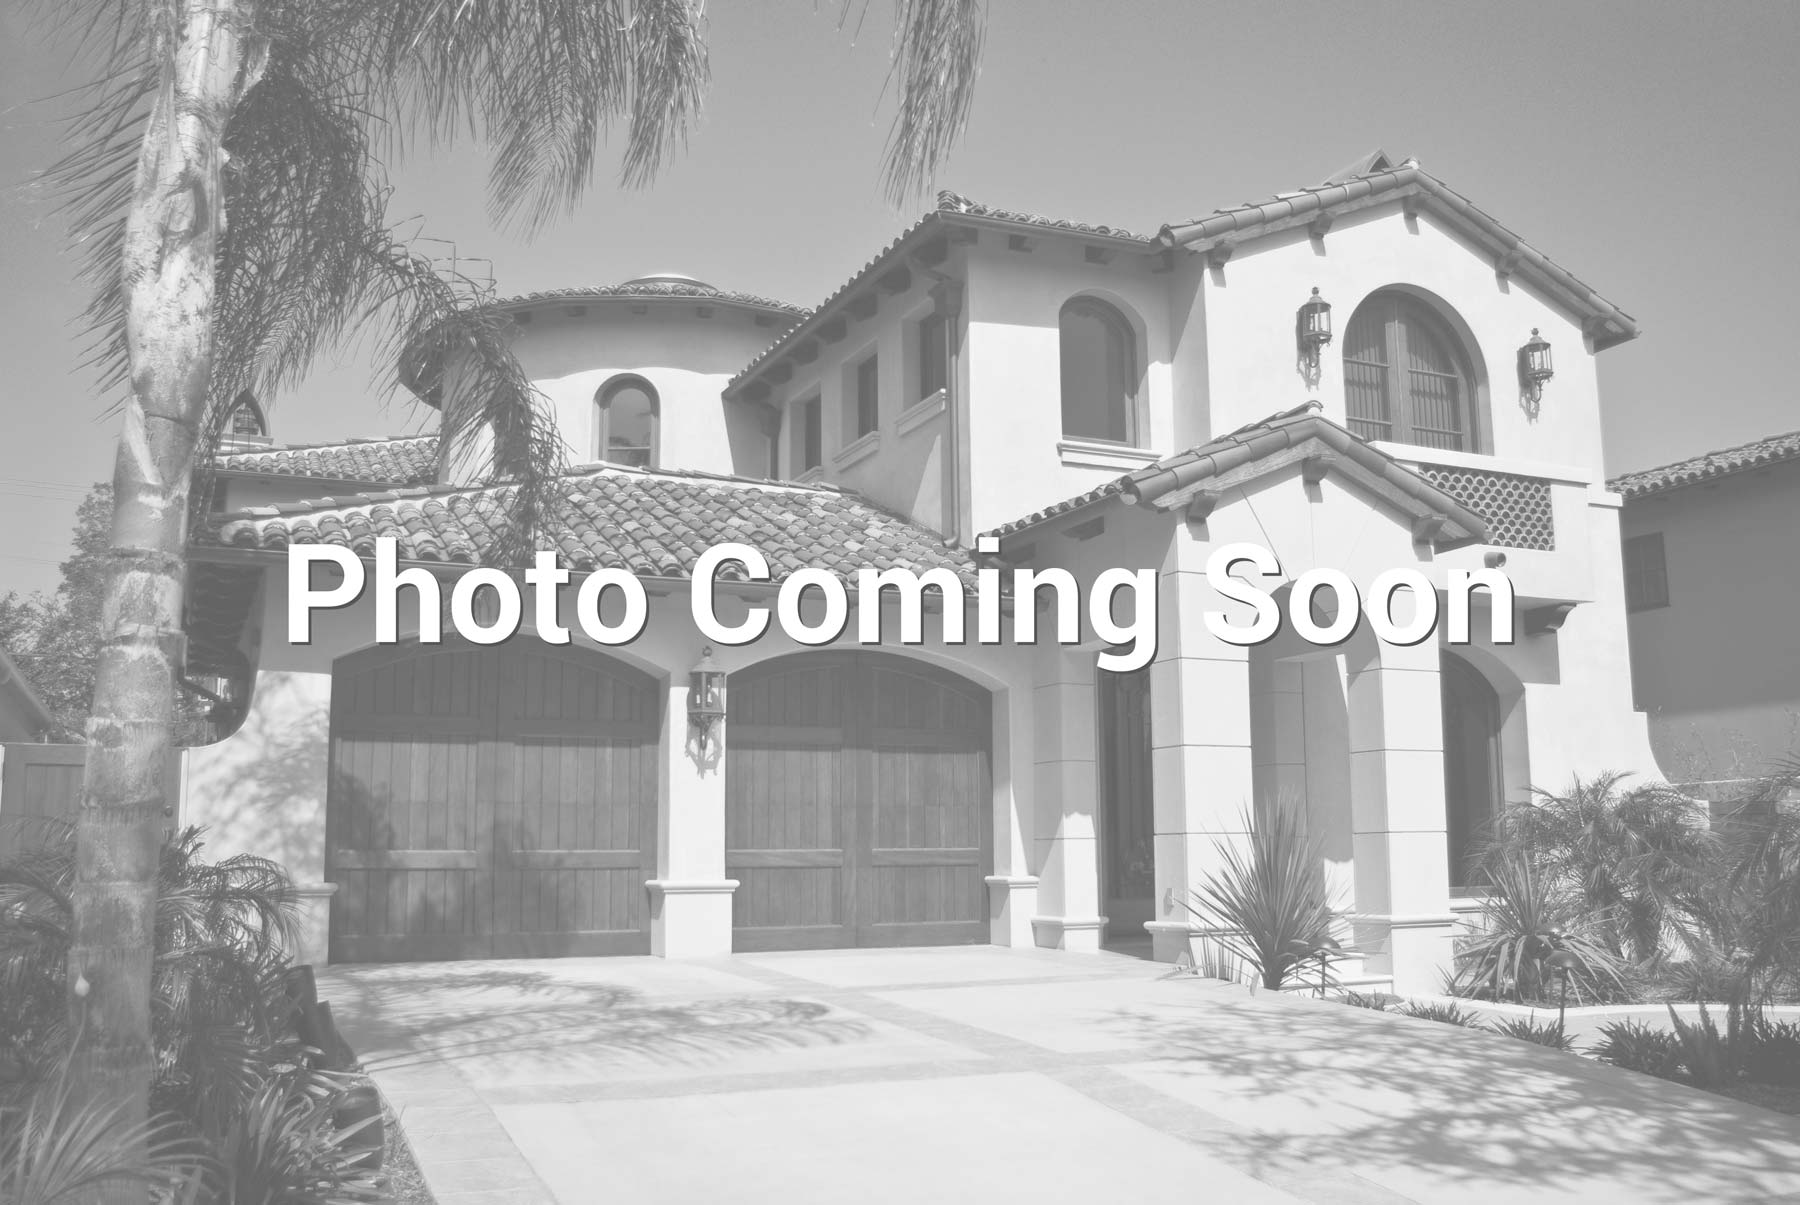 $139,900 - 3Br/2Ba -  for Sale in Fallbrook, Fallbrook